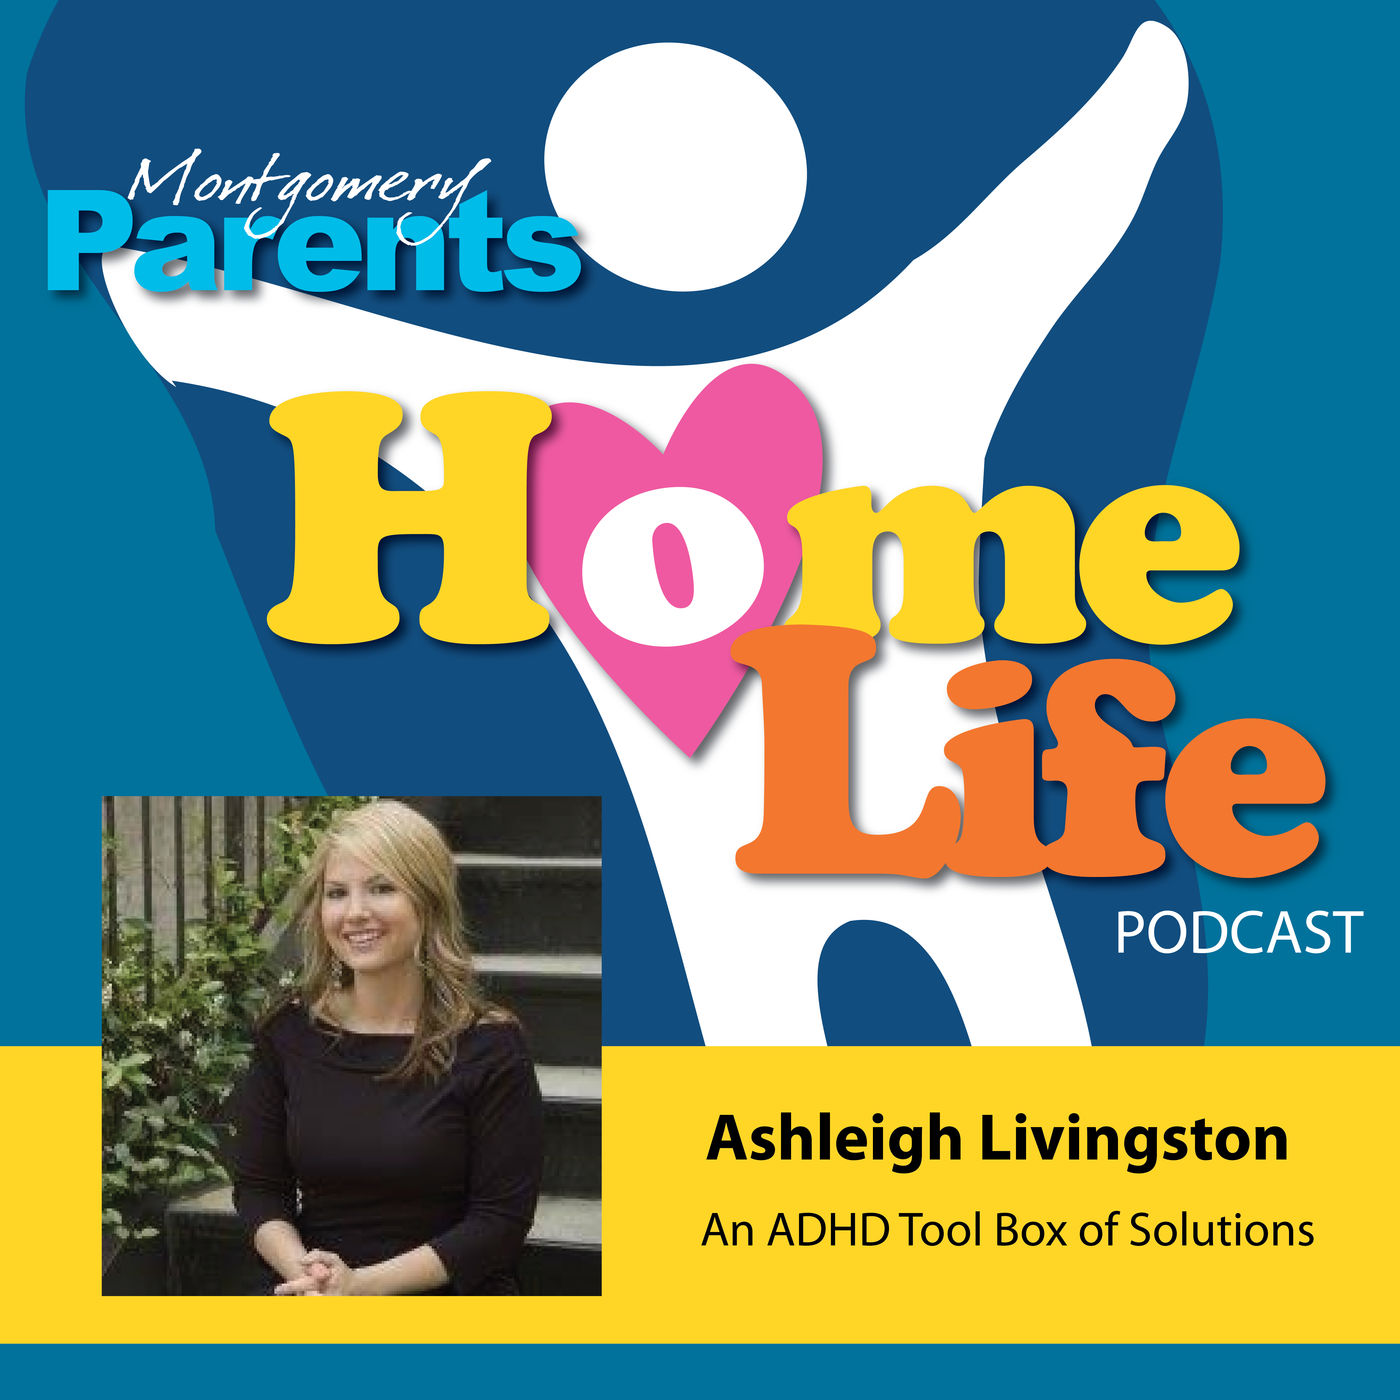 An ADHD Tool Box of Solutions with Ashleigh Livingston